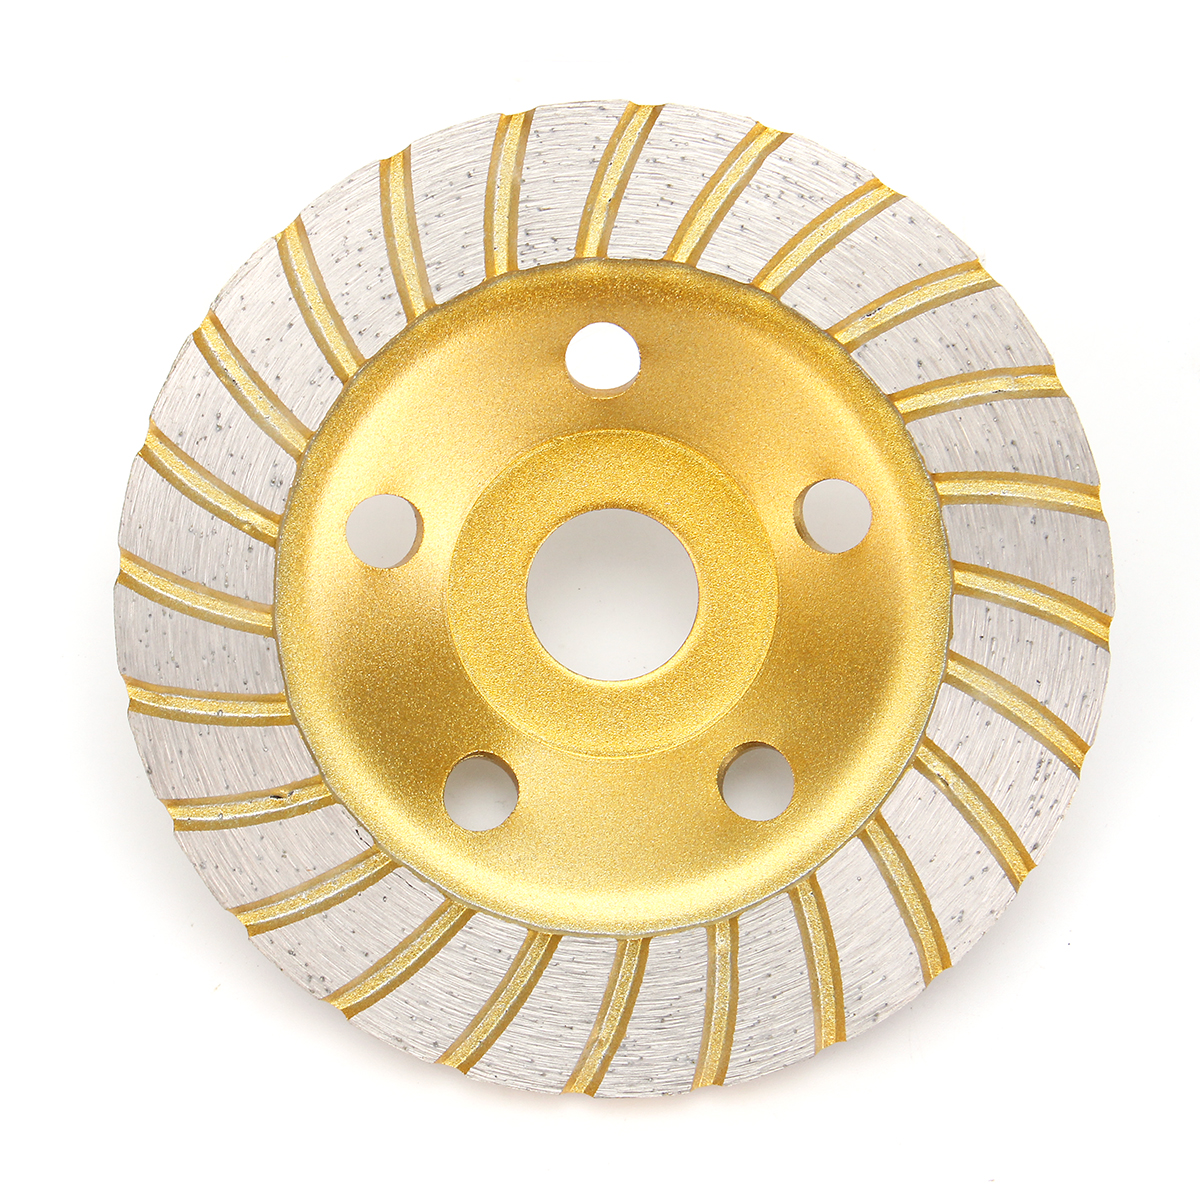 5 Inch Diamond Grinding Wheel Disc 5 Holes for Marble Concrete Granite Stone